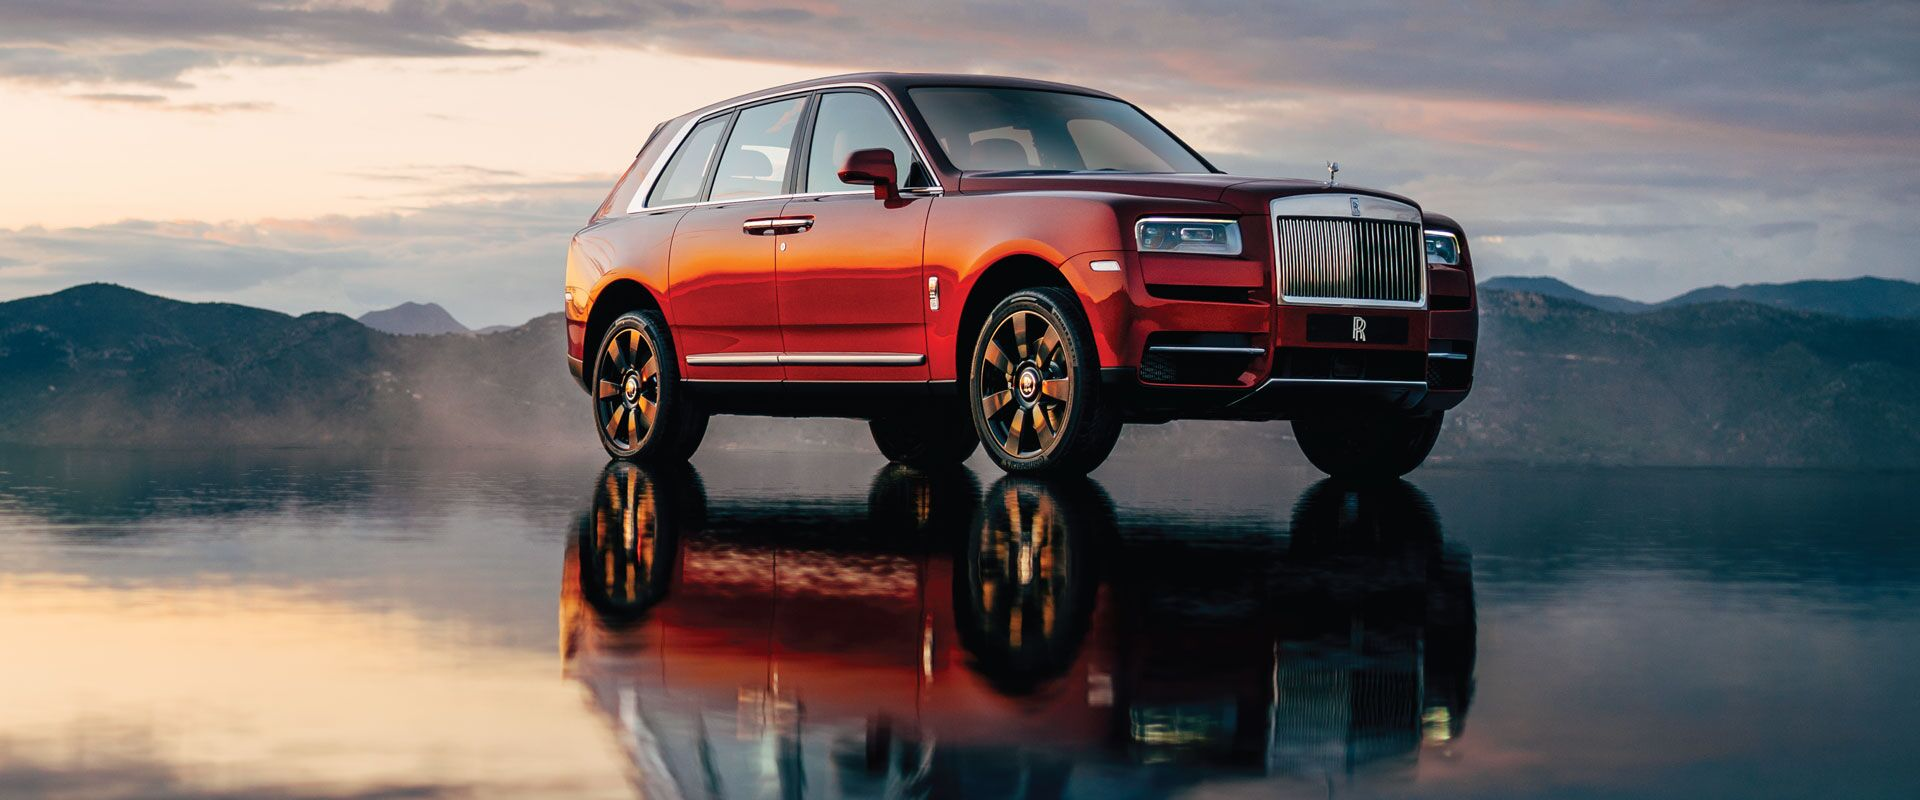 The New Rolls-Royce Cullinan